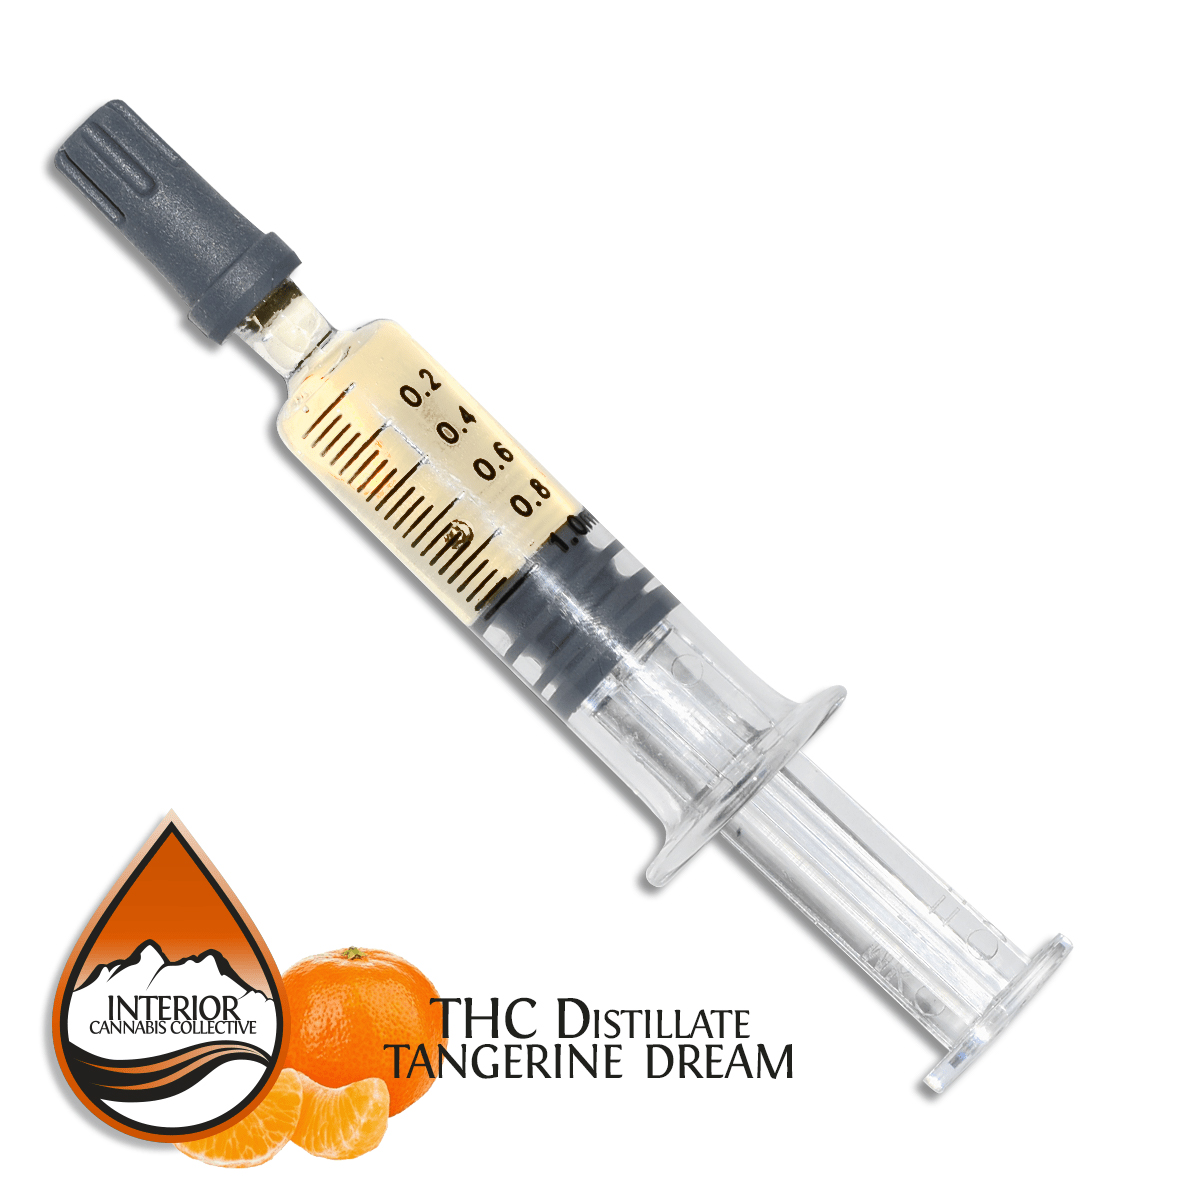 thc-distillate-tangerine-dream